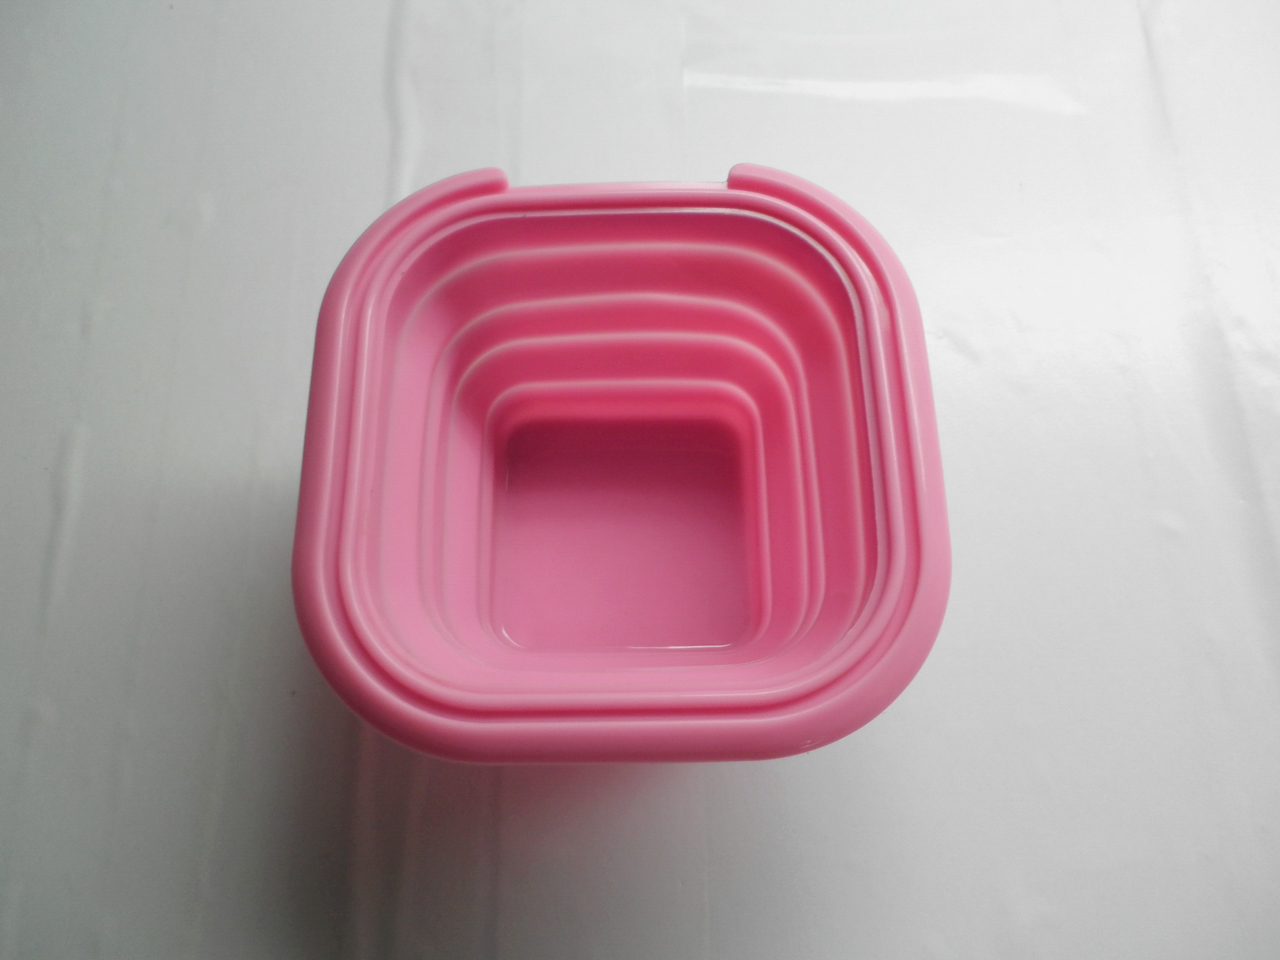 http://www.refinehksilicone.cn/data/images/product/20180418101224_911.jpg